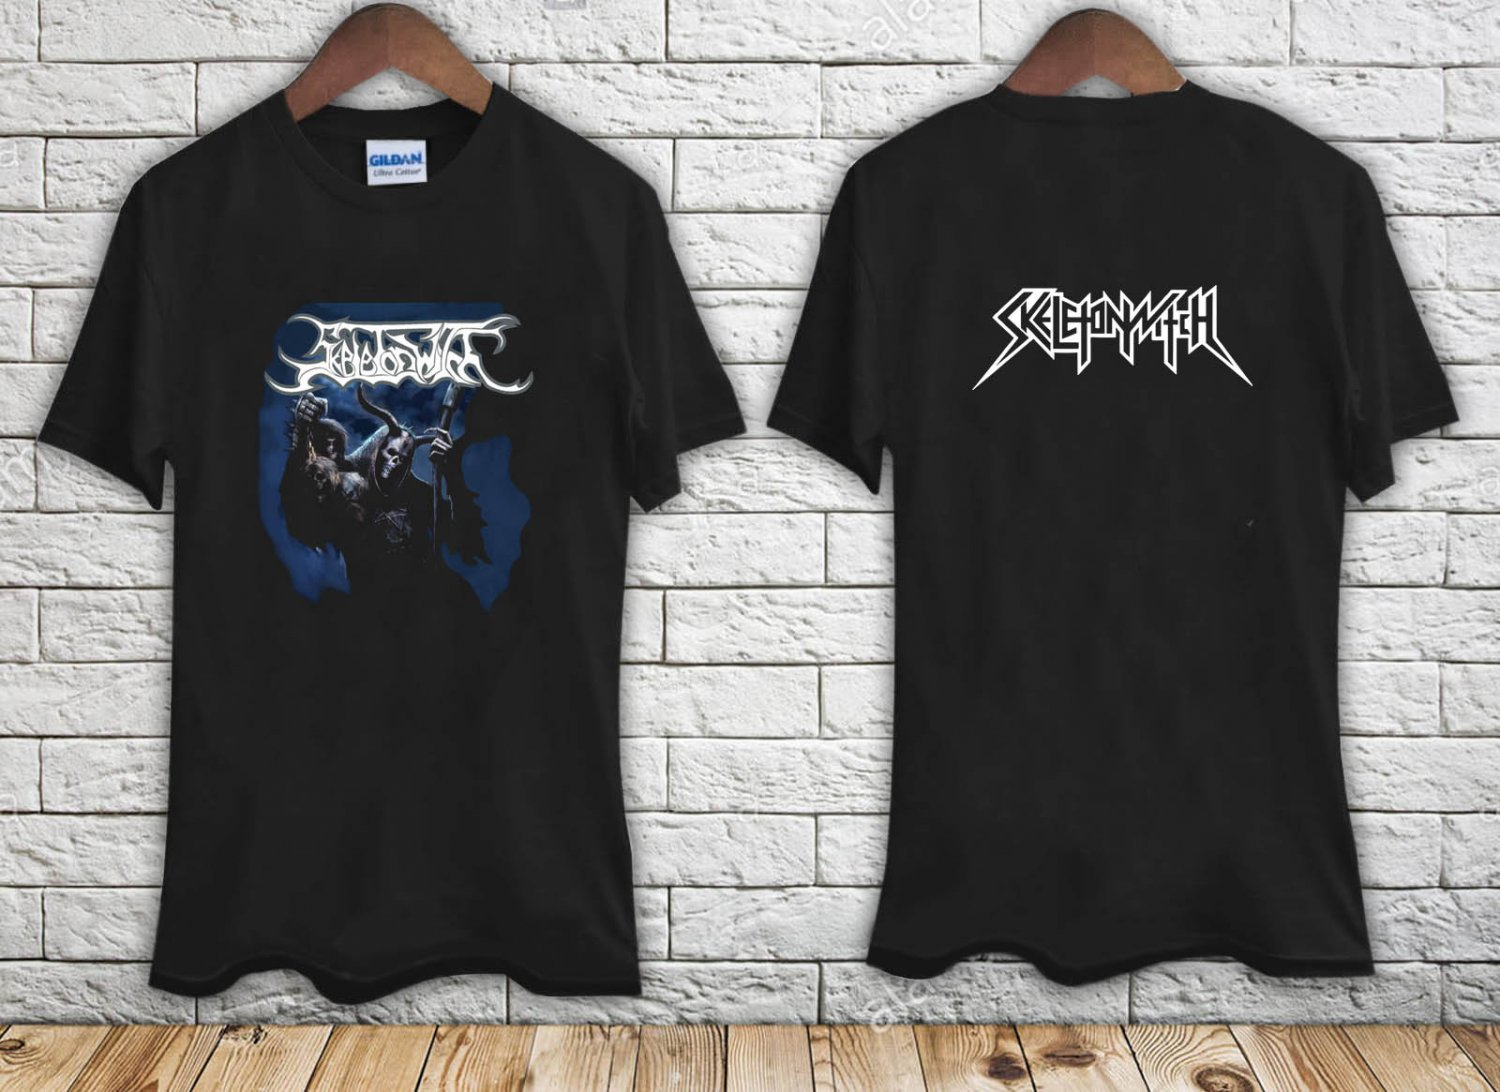 SKELETONWITCH (At One With The Shadows) black t-shirt tshirt shirts tee SIZE 3XL